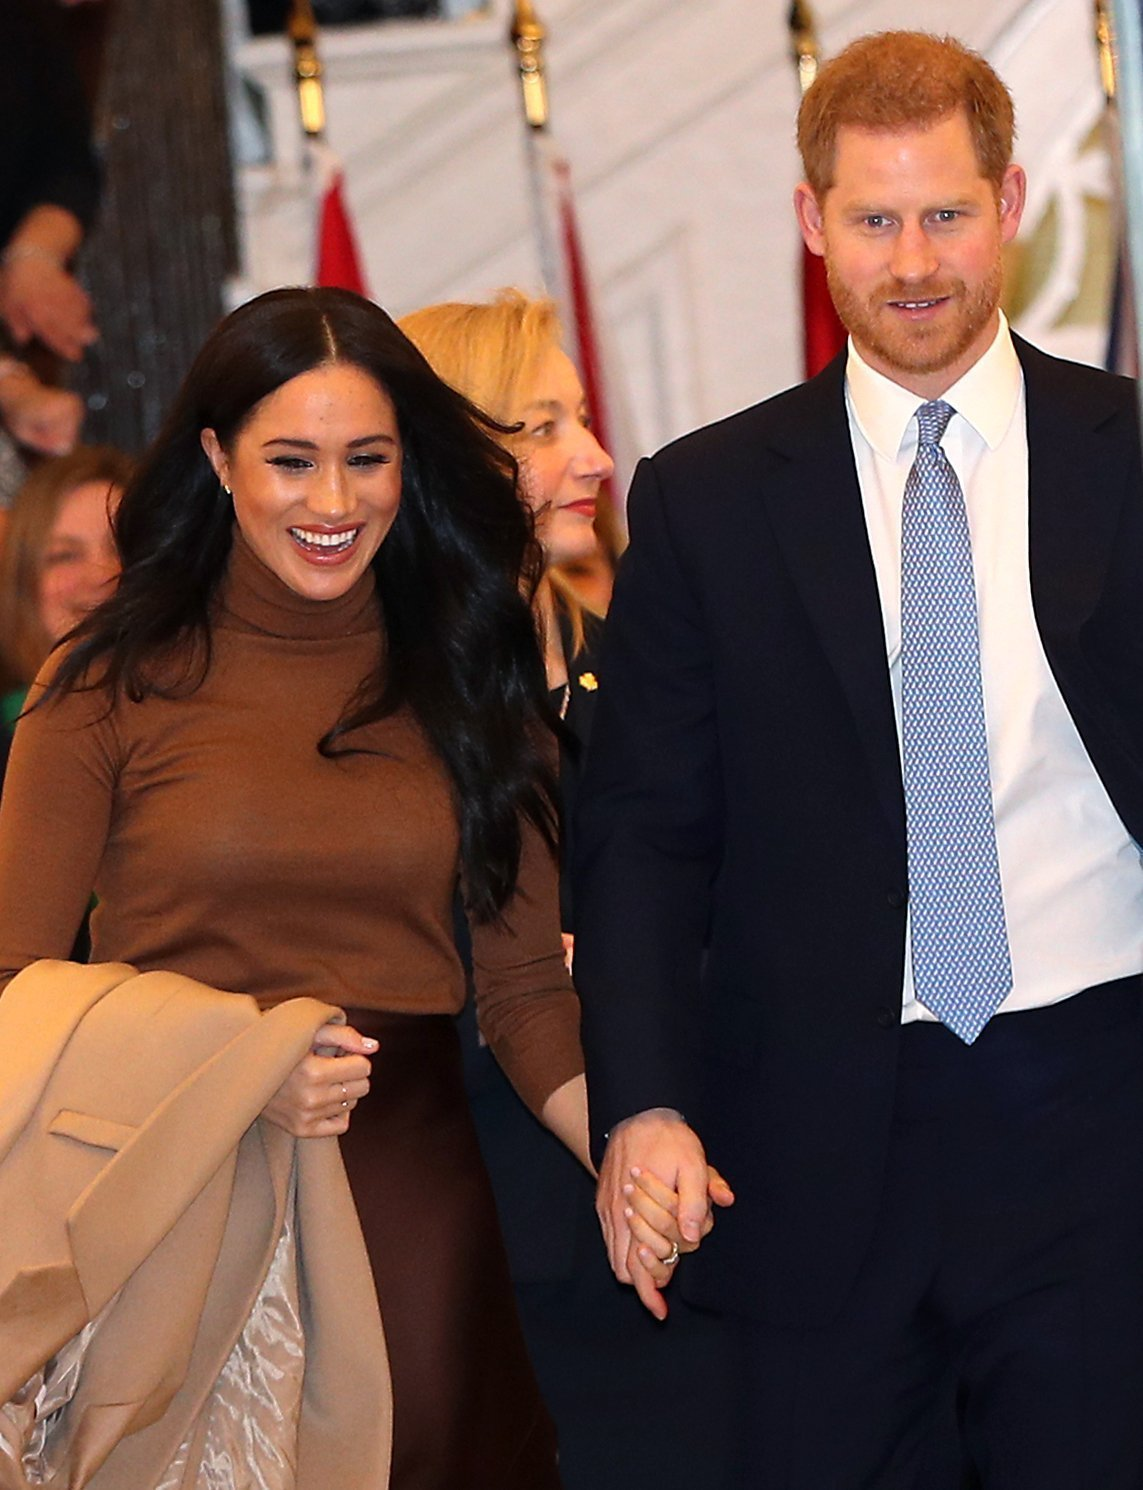 The Duke and Duchess of Sussex leaving after their visit to Canada House, central London, to meet with Canada's High Commissioner to the UK, Janice Charette, as well as staff, to thank them for the warm hospitality and support they received during their recent stay in Canada. Picture date: Tuesday January 7, 2020|Photo: Getty Images